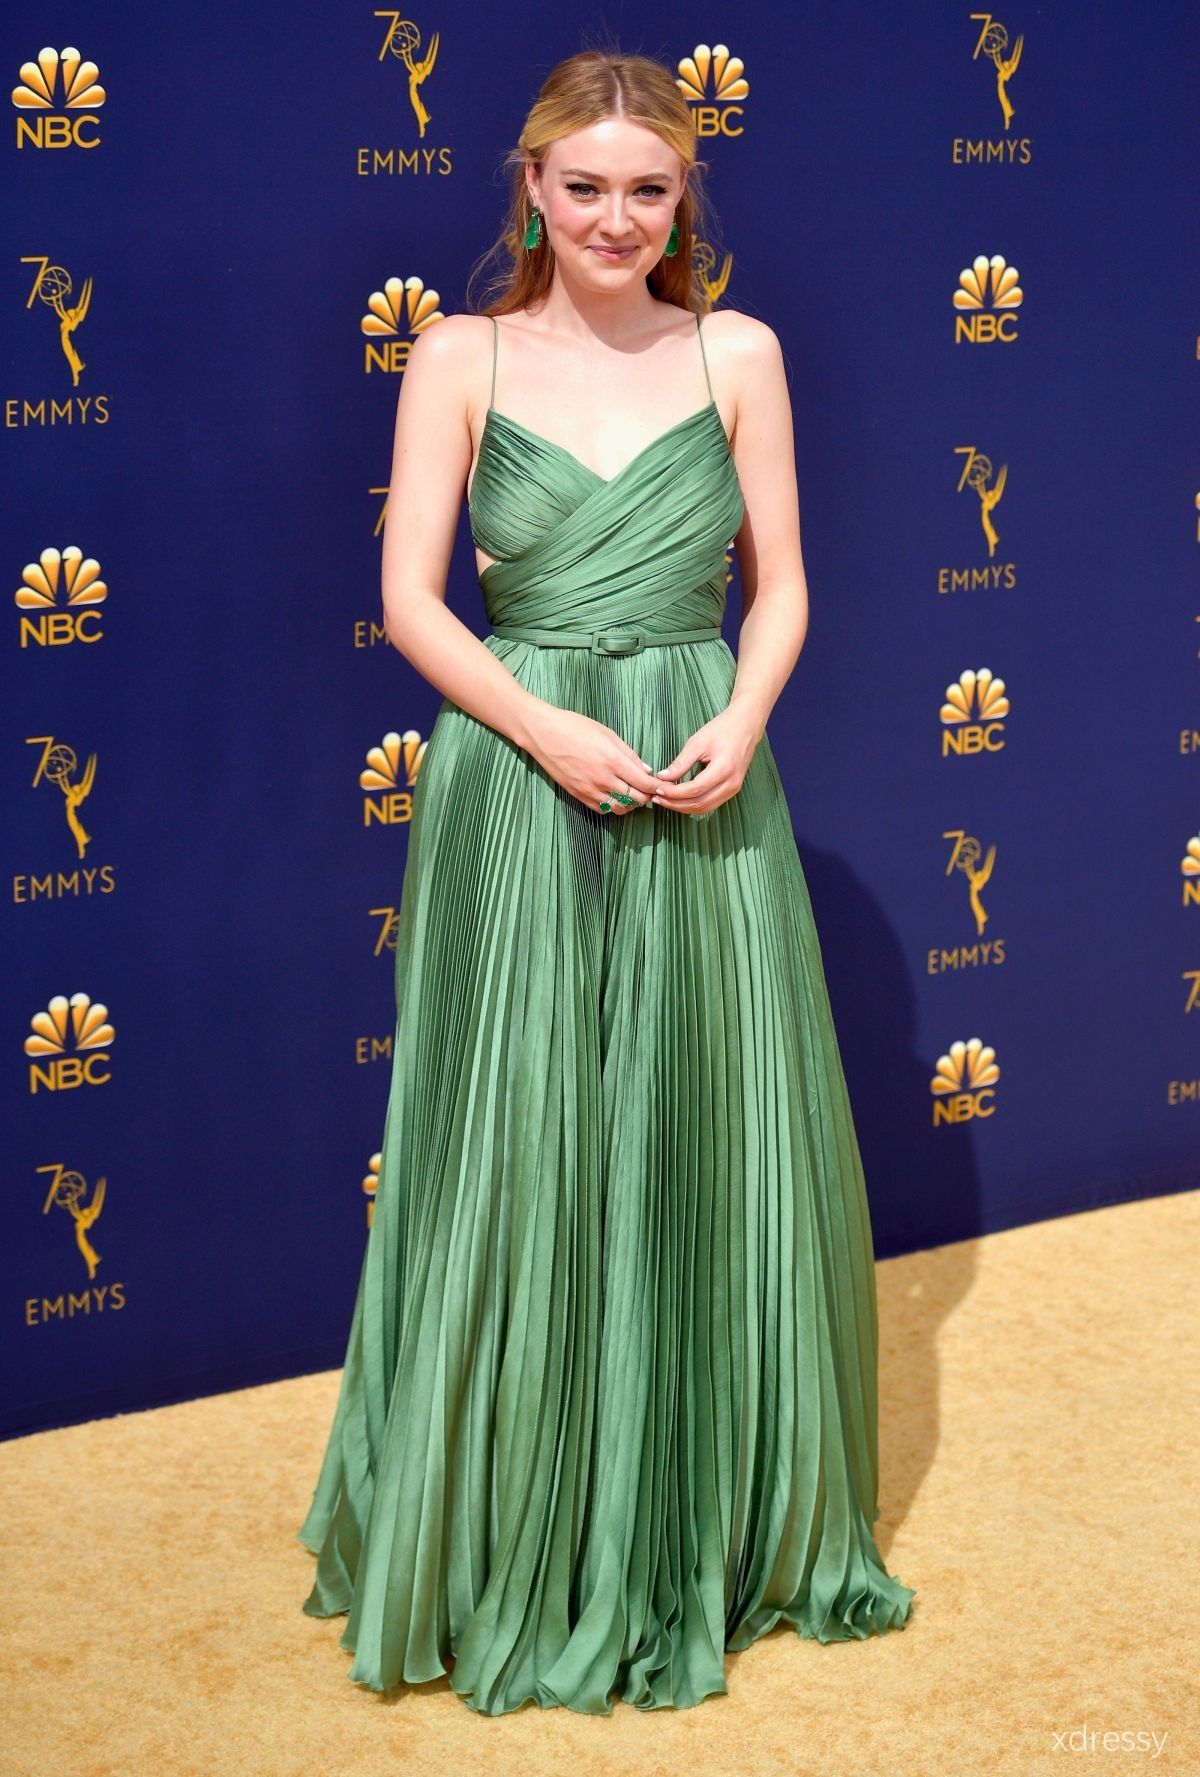 96c8c7ee84 Dakota Fanning Green Pleated Criss-crossed Open Back with Spaghetti Straps  A-line Dress Emmys 2018 Red Carpet